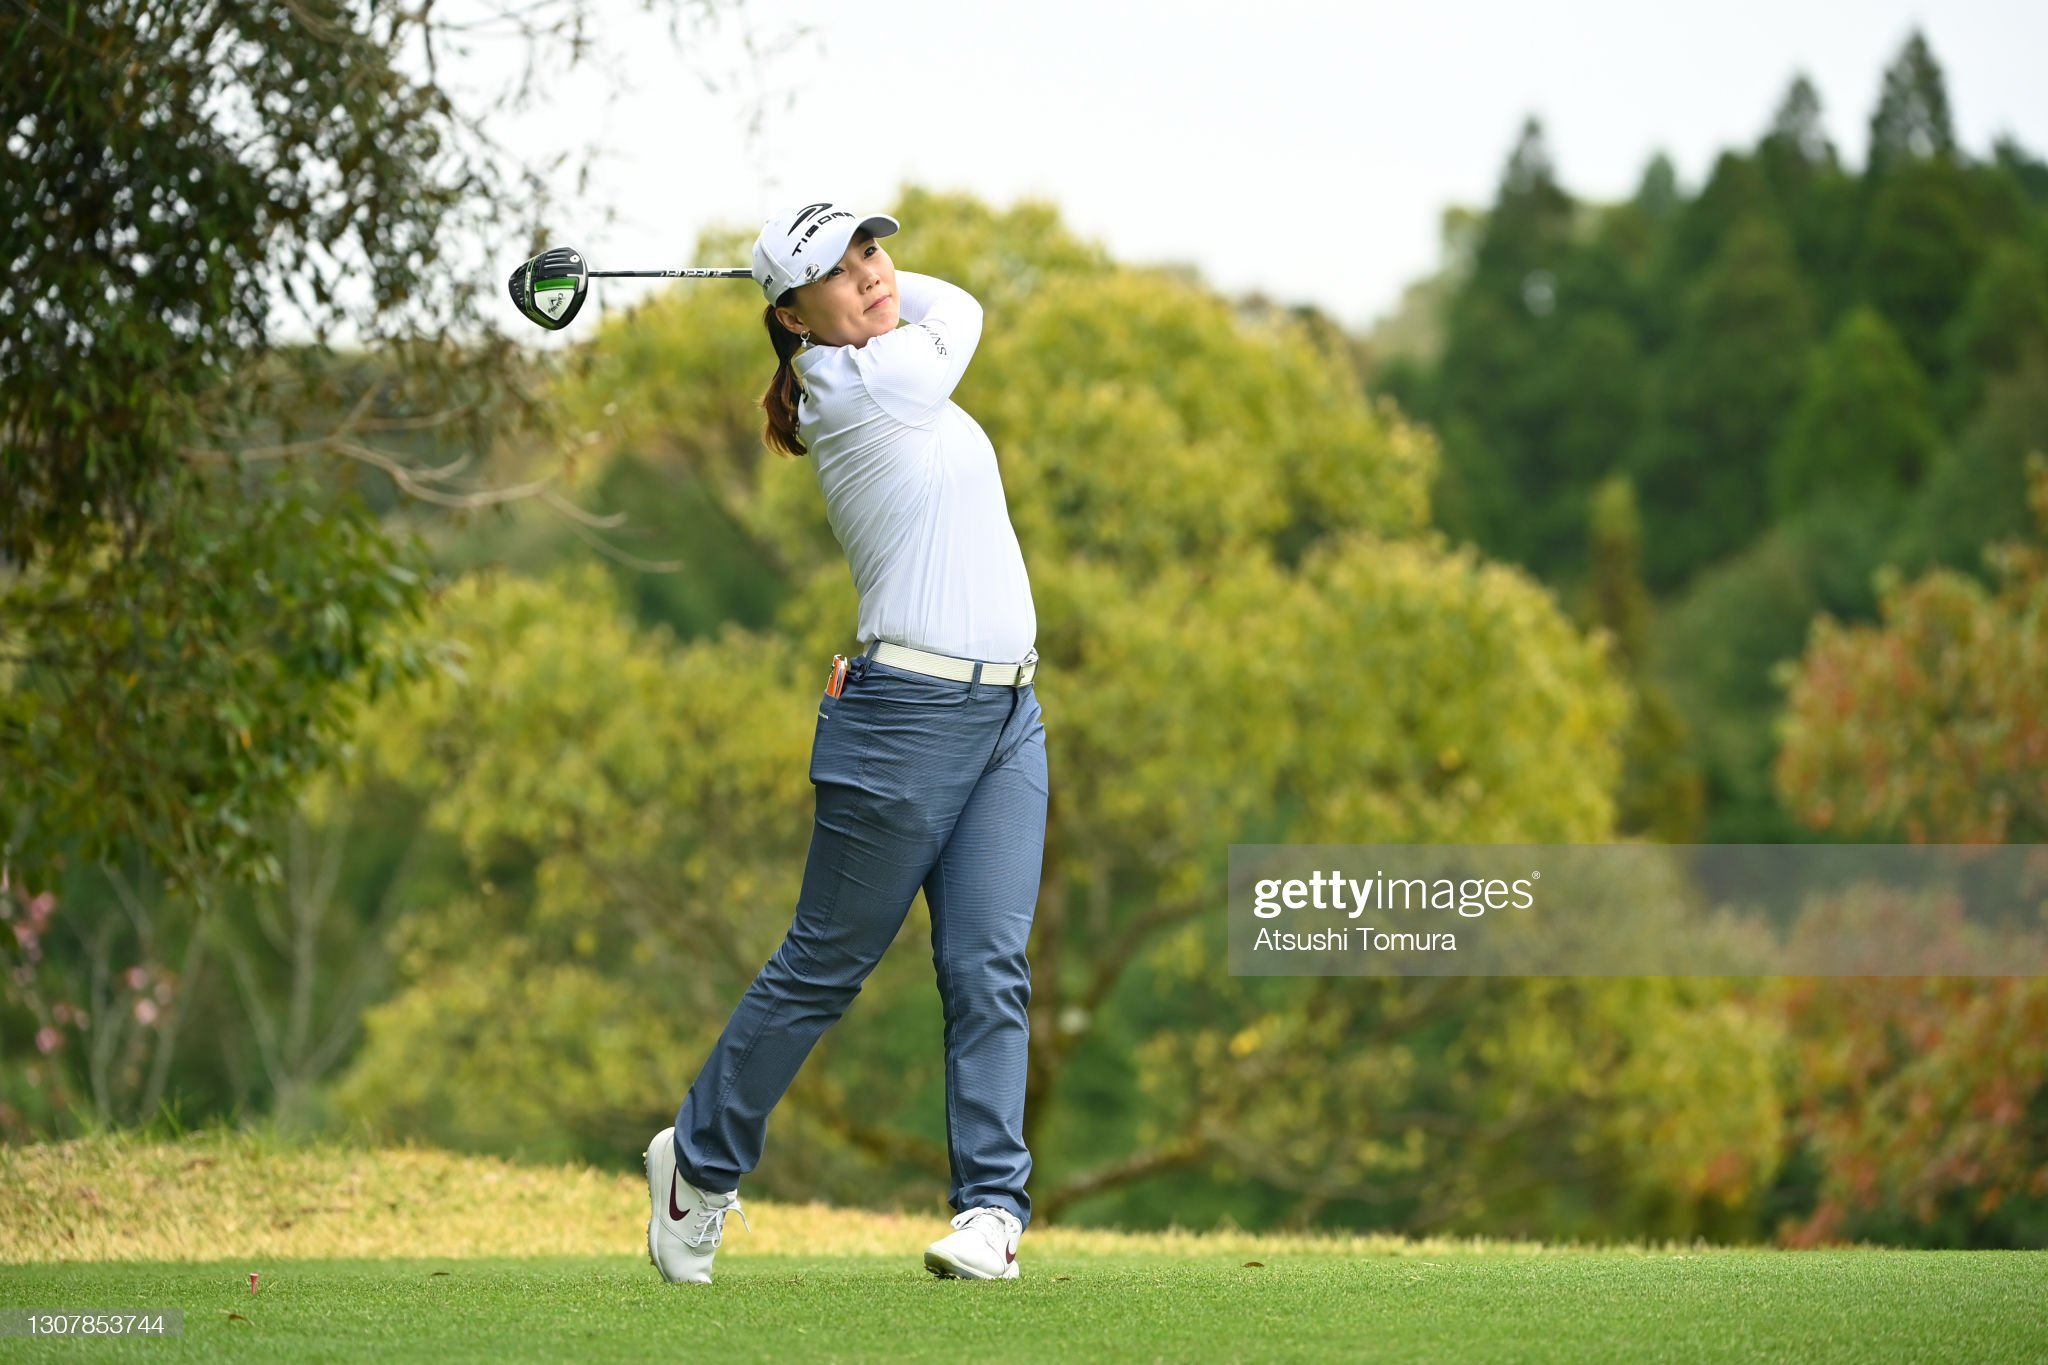 https://media.gettyimages.com/photos/nari-lee-of-south-korea-hits-her-tee-shot-on-the-5th-hole-during-the-picture-id1307853744?s=2048x2048